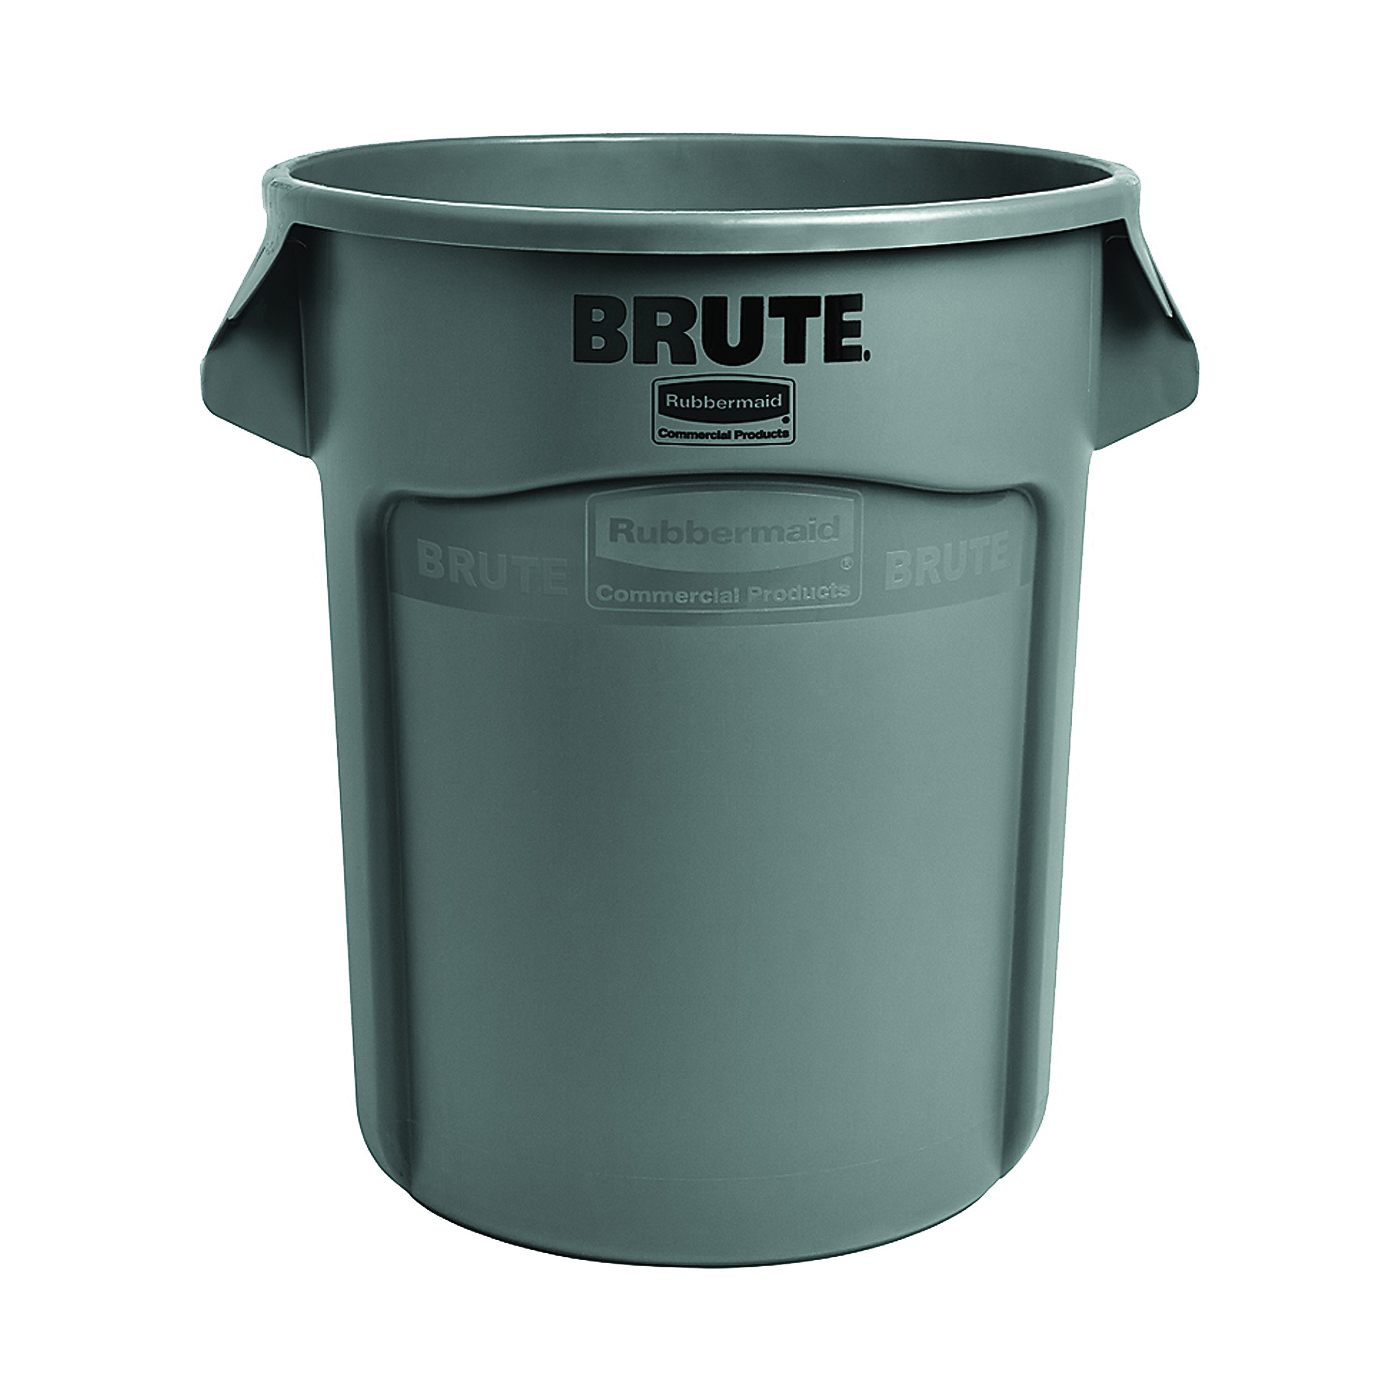 Picture of Rubbermaid 262016GRAY Trash Container, 20 gal Capacity, Plastic, Gray